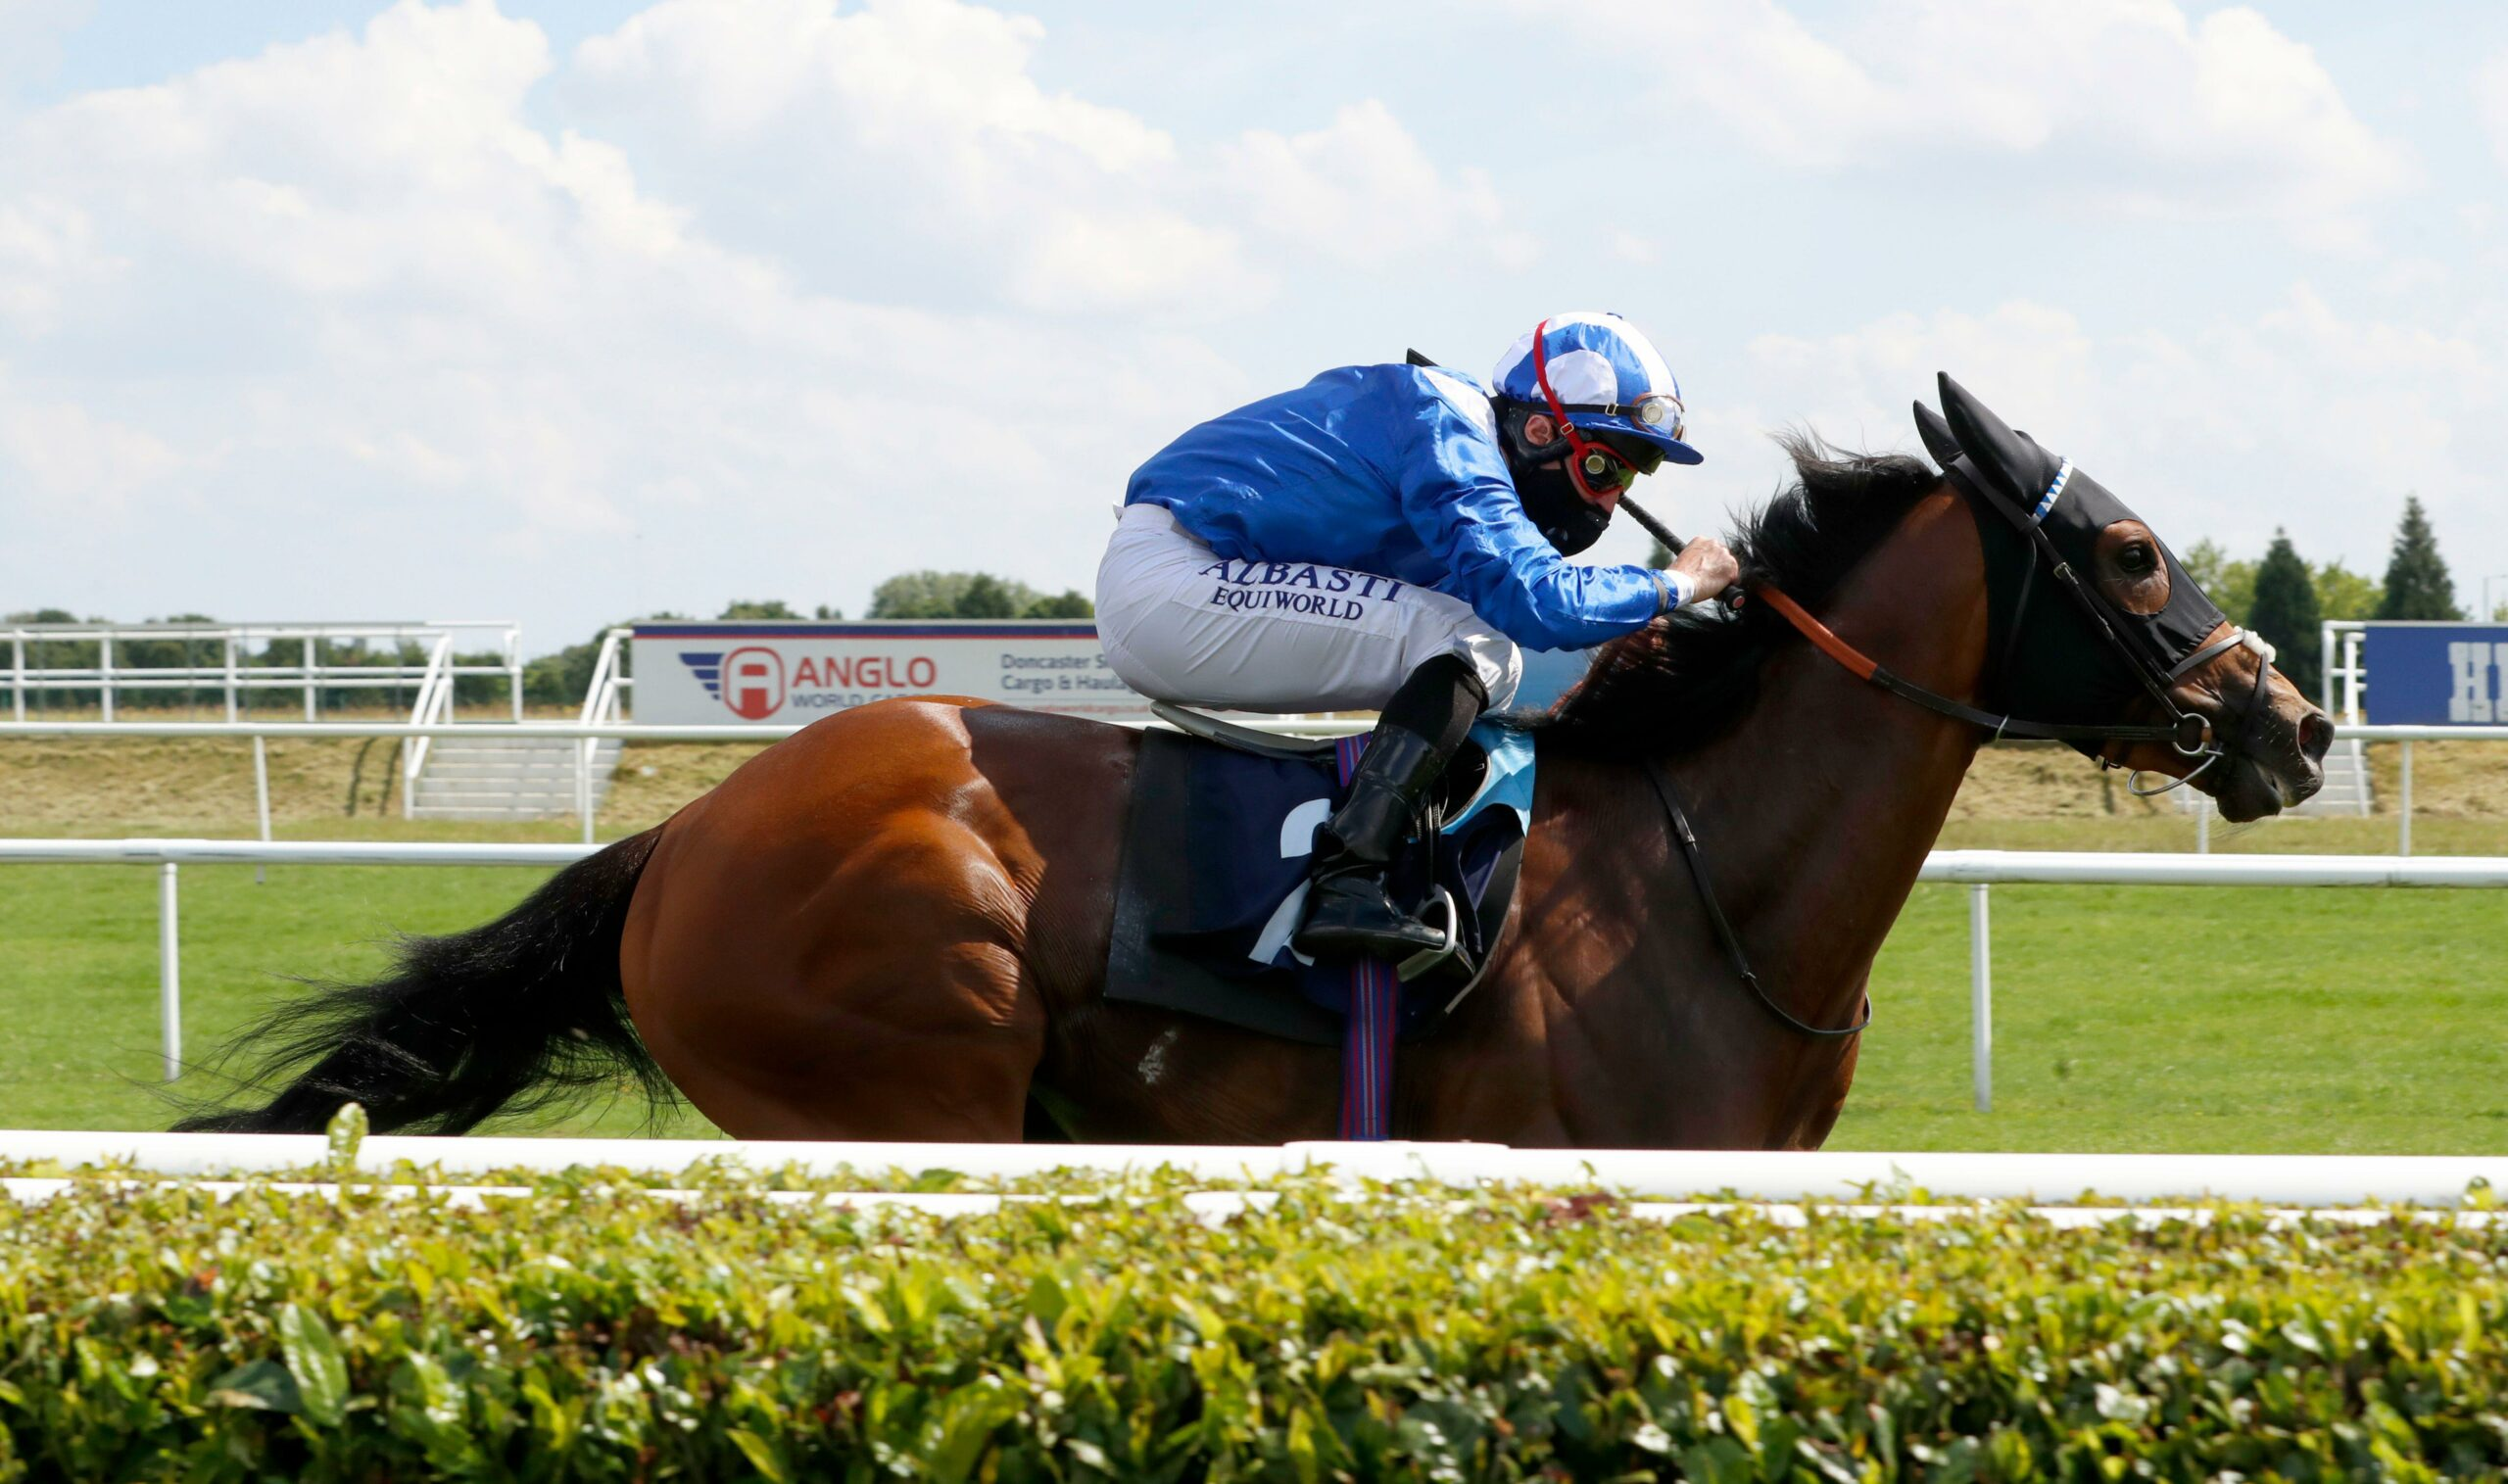 BIG RACE PREVIEW: Hungerford Stakes